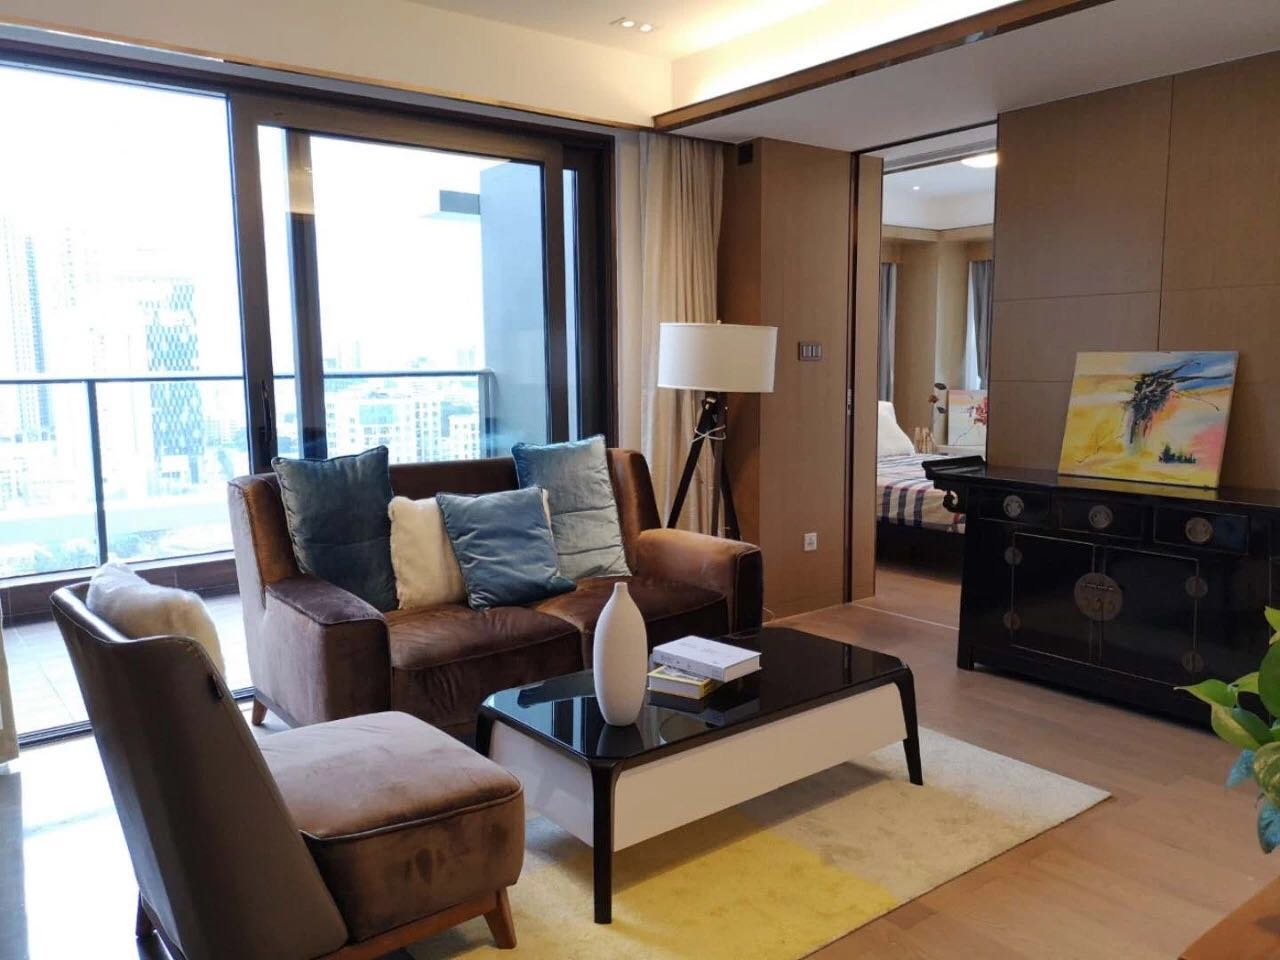 Luxurious 2 bedrooms apartment in shekou for rent